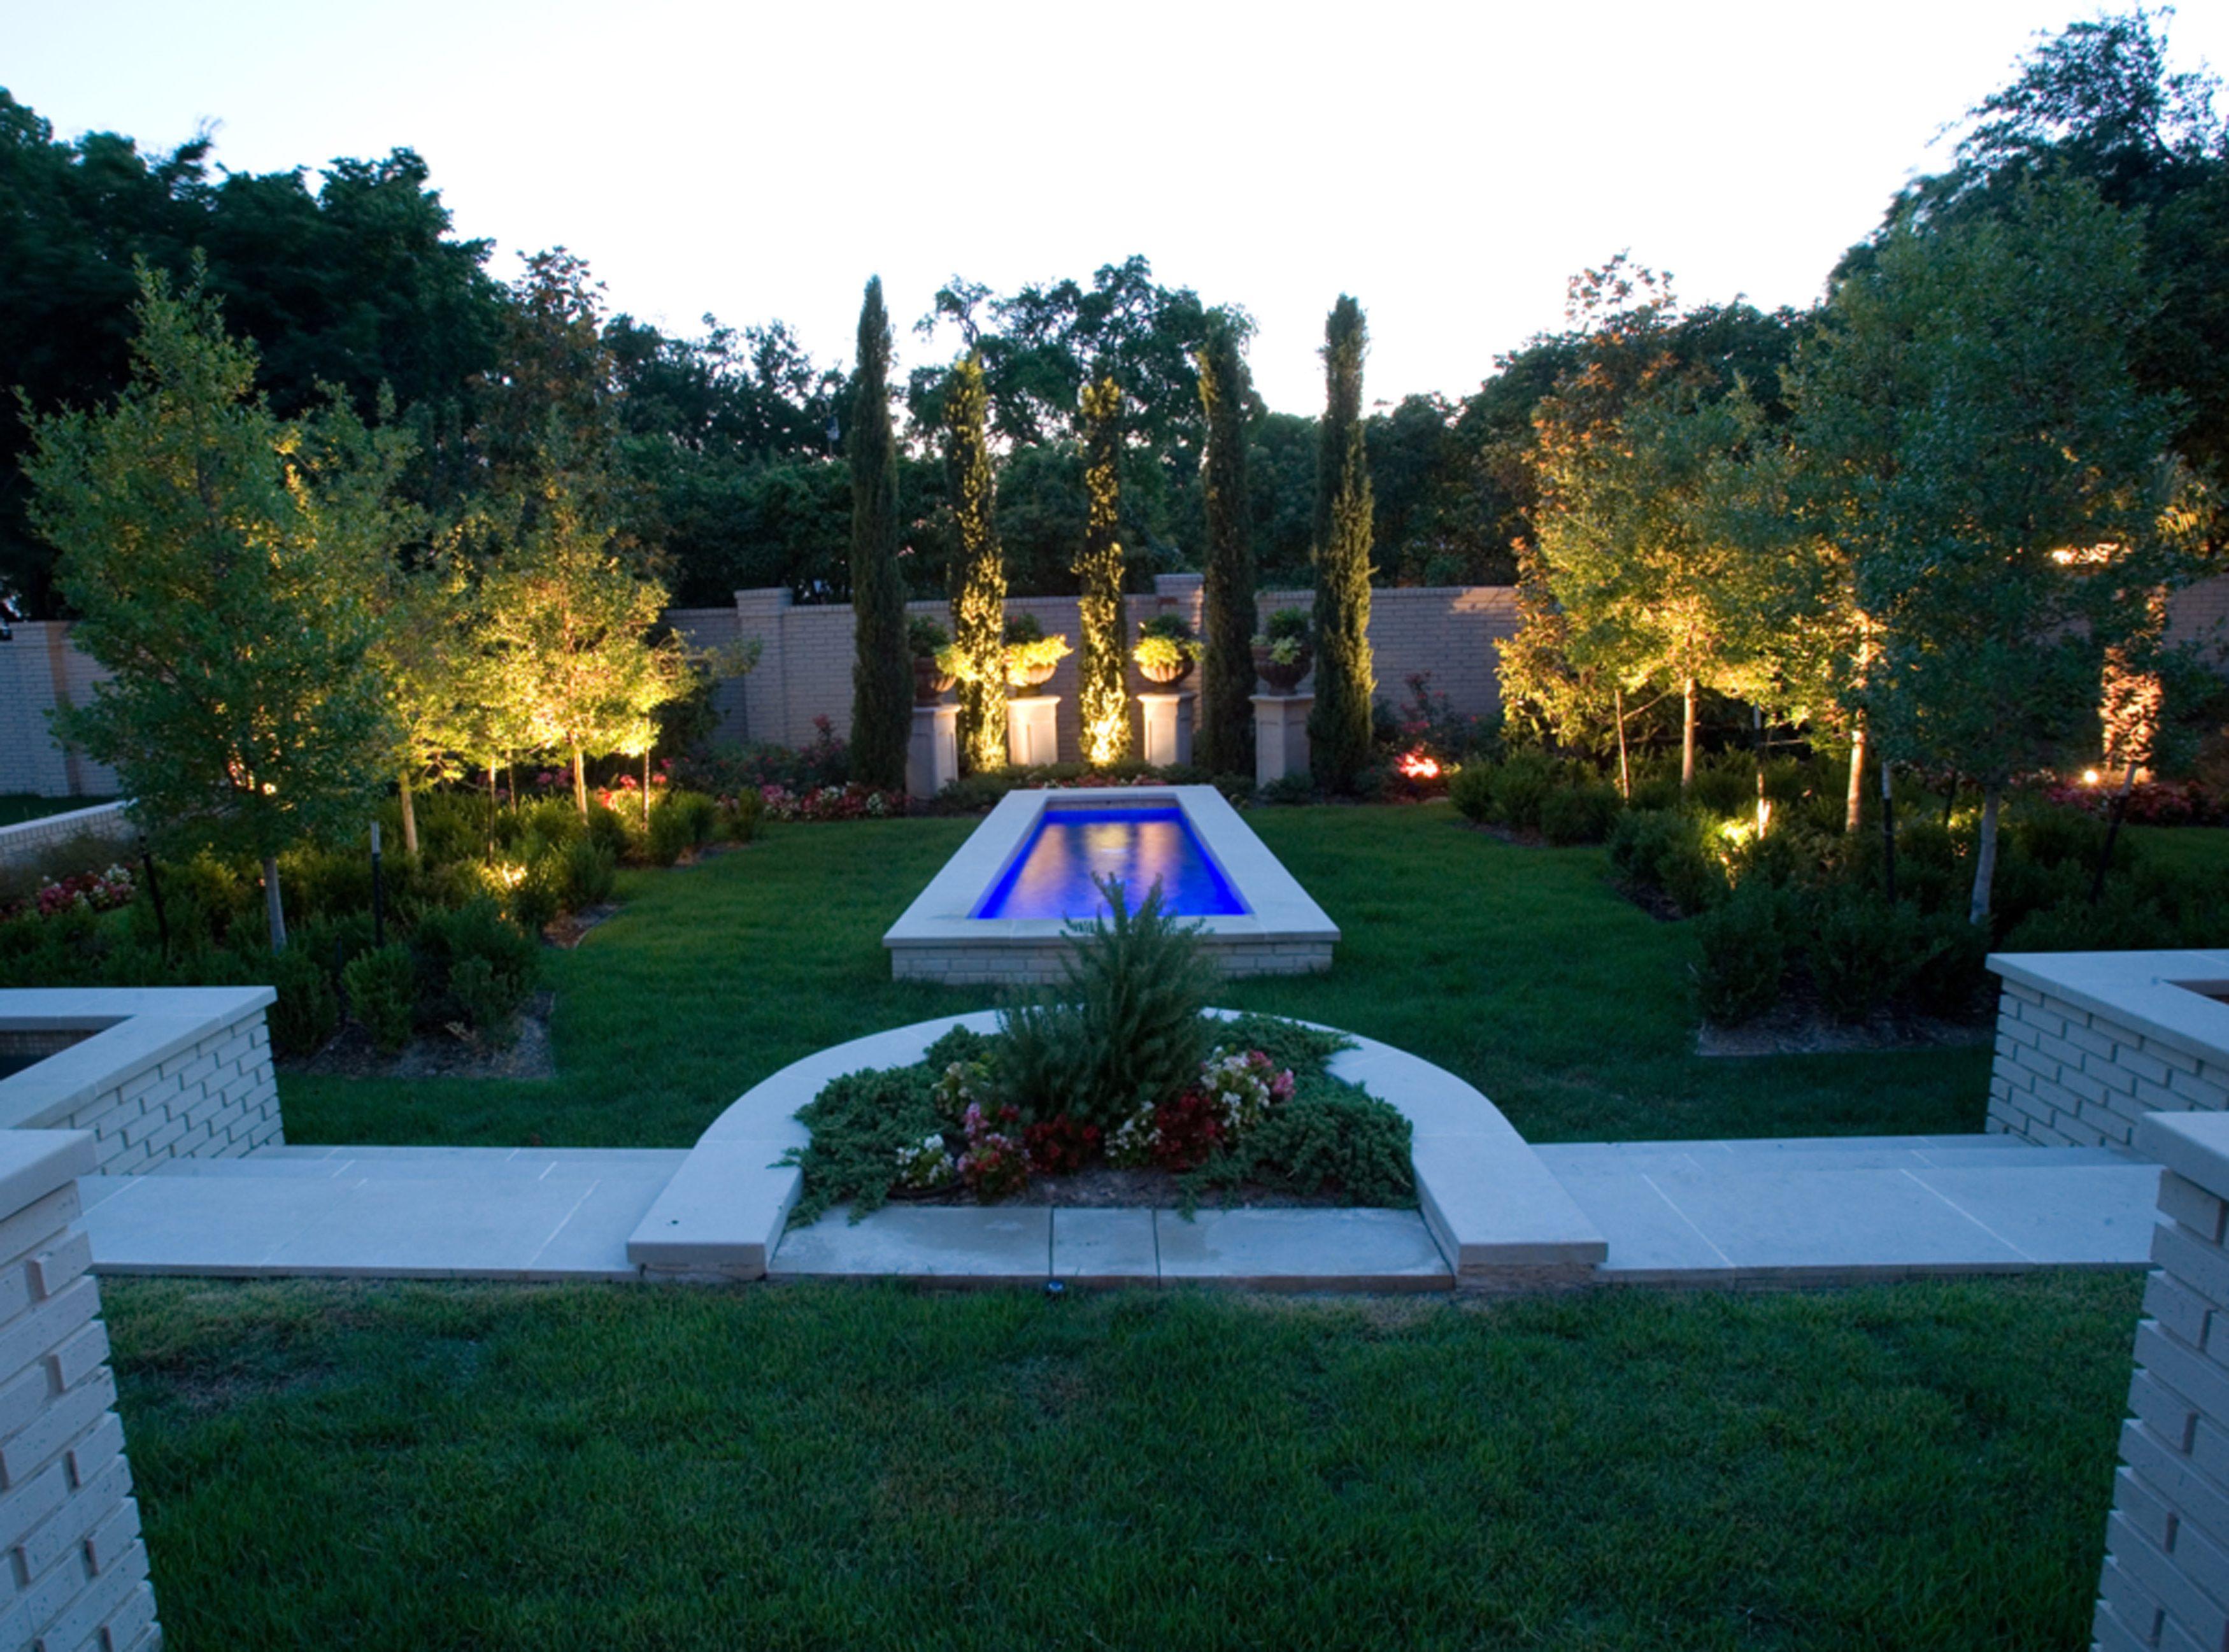 Minimalist For Tailor Your Lawn With A Stone Landscape Borders Lawn Connections Pool Area Lighting (Image 15 of 25)